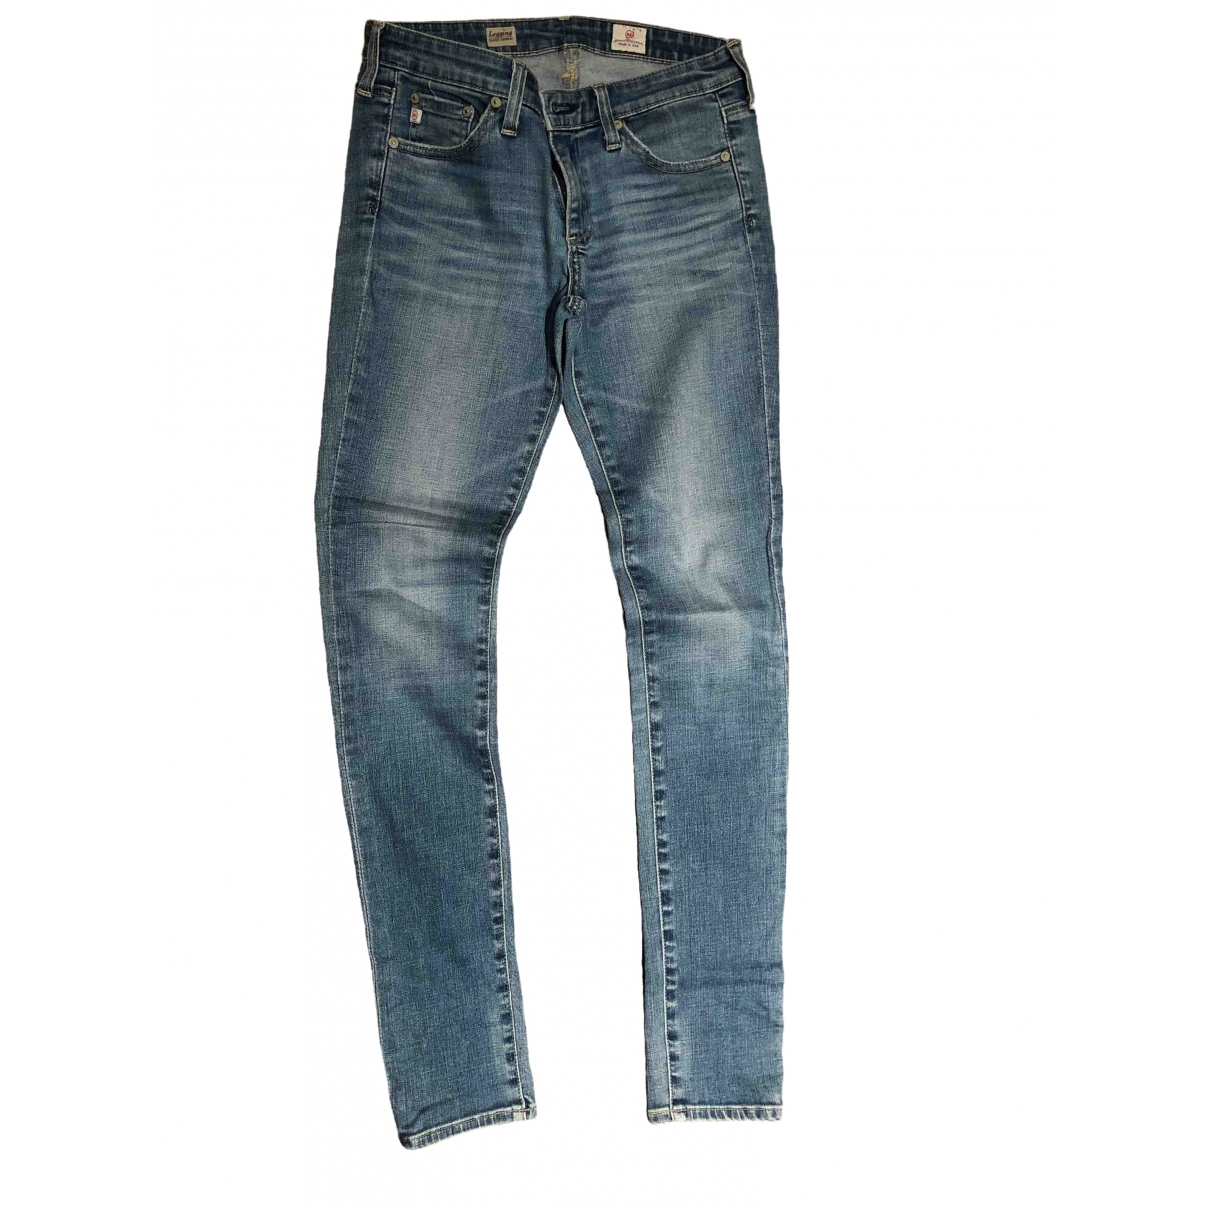 Adriano Goldschmied \N Blue Denim - Jeans Jeans for Women 26 US